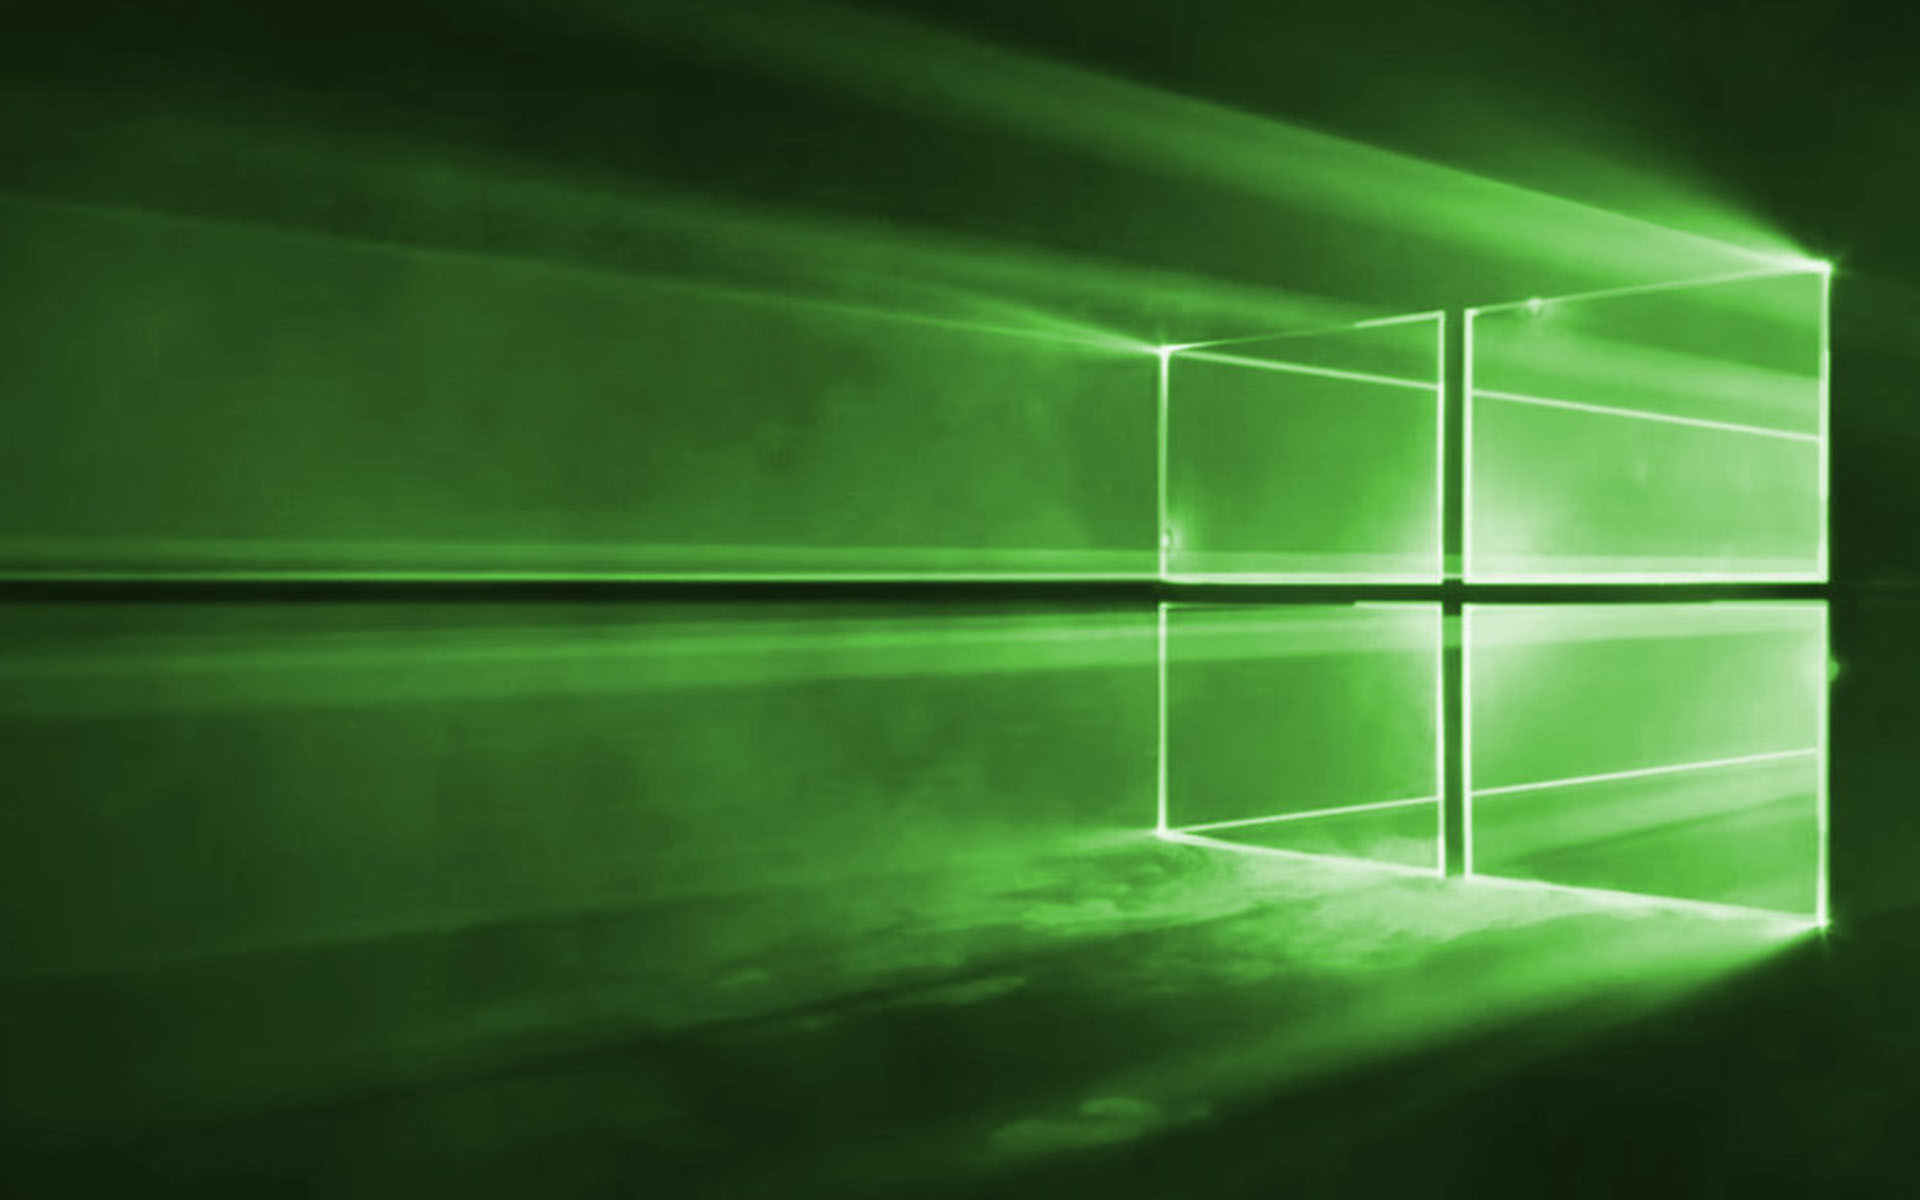 Download the New Gallery of Hd Wallpapers 19201080 Windows 10 and 1920x1200